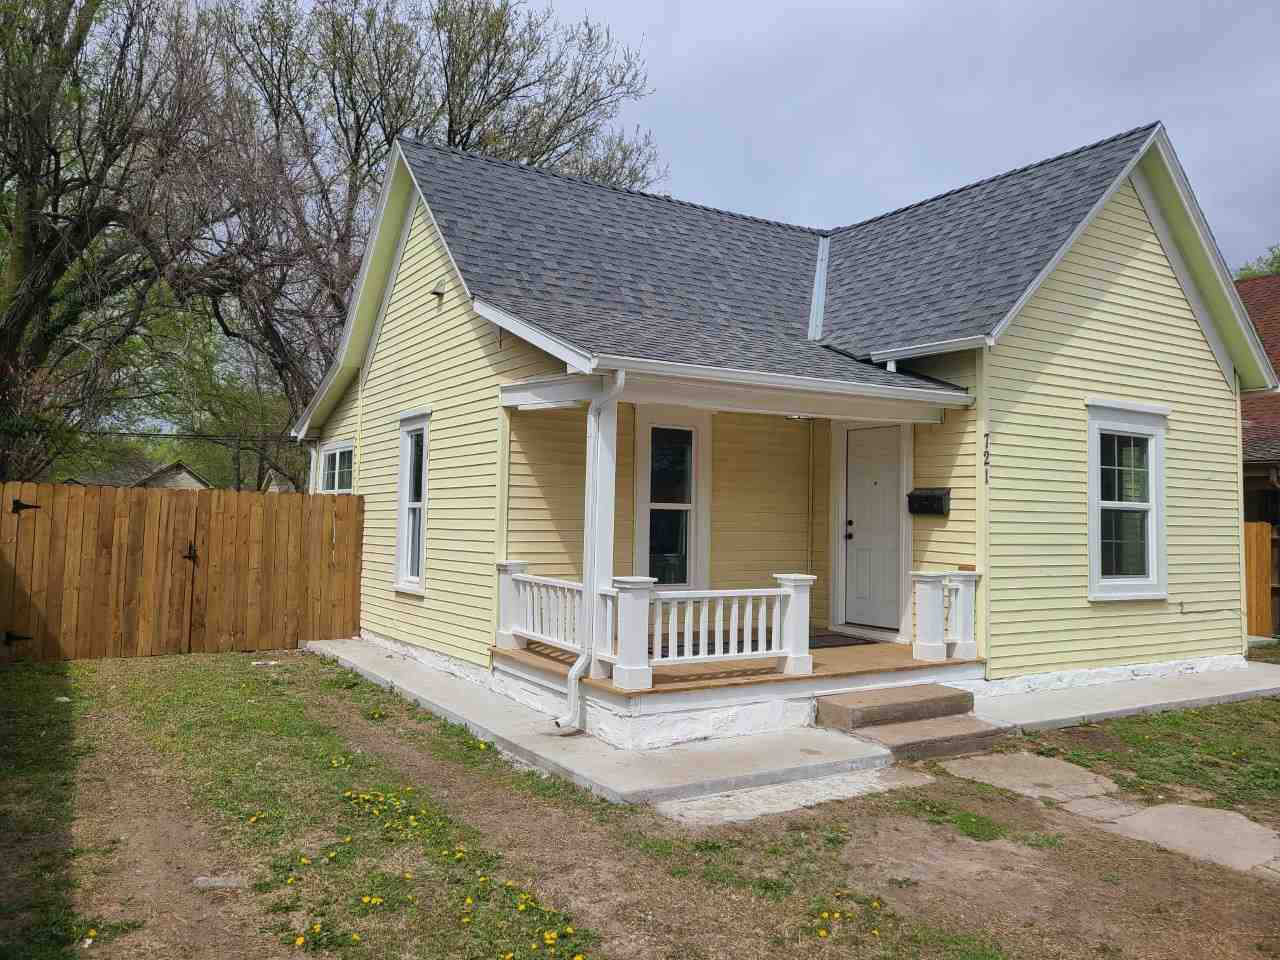 Beautiful starter home or make it your first investment property!  No need to put money into to it.